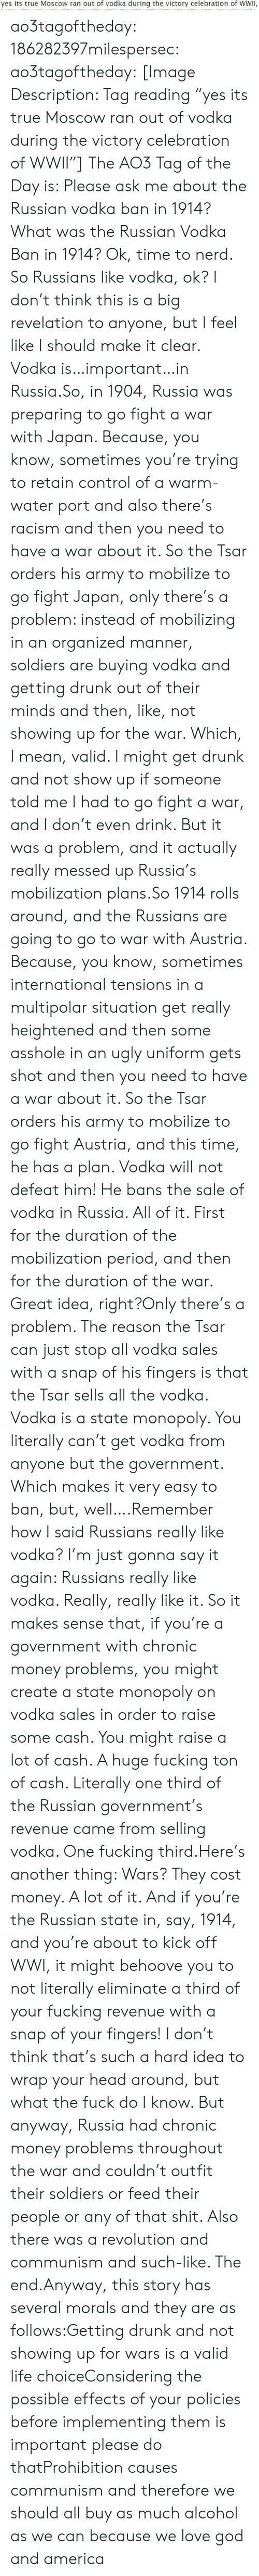 "America, Drunk, and Fucking: yes its true Moscow ran out of vodka during the victory celebration of WWII, ao3tagoftheday:  186282397milespersec:  ao3tagoftheday:  [Image Description: Tag reading ""yes its true Moscow ran out of vodka during the victory celebration of WWII""]  The AO3 Tag of the Day is: Please ask me about the Russian vodka ban in 1914?   What was the Russian Vodka Ban in 1914?  Ok, time to nerd. So Russians like vodka, ok? I don't think this is a big revelation to anyone, but I feel like I should make it clear. Vodka is…important…in Russia.So, in 1904, Russia was preparing to go fight a war with Japan. Because, you know, sometimes you're trying to retain control of a warm-water port and also there's racism and then you need to have a war about it. So the Tsar orders his army to mobilize to go fight Japan, only there's a problem: instead of mobilizing in an organized manner, soldiers are buying vodka and getting drunk out of their minds and then, like, not showing up for the war. Which, I mean, valid. I might get drunk and not show up if someone told me I had to go fight a war, and I don't even drink. But it was a problem, and it actually really messed up Russia's mobilization plans.So 1914 rolls around, and the Russians are going to go to war with Austria. Because, you know, sometimes international tensions in a multipolar situation get really heightened and then some asshole in an ugly uniform gets shot and then you need to have a war about it. So the Tsar orders his army to mobilize to go fight Austria, and this time, he has a plan. Vodka will not defeat him! He bans the sale of vodka in Russia. All of it. First for the duration of the mobilization period, and then for the duration of the war. Great idea, right?Only there's a problem. The reason the Tsar can just stop all vodka sales with a snap of his fingers is that the Tsar sells all the vodka. Vodka is a state monopoly. You literally can't get vodka from anyone but the government. Which makes it very easy to ban, but, well….Remember how I said Russians really like vodka? I'm just gonna say it again: Russians really like vodka. Really, really like it. So it makes sense that, if you're a government with chronic money problems, you might create a state monopoly on vodka sales in order to raise some cash. You might raise a lot of cash. A huge fucking ton of cash. Literally one third of the Russian government's revenue came from selling vodka. One fucking third.Here's another thing: Wars? They cost money. A lot of it. And if you're the Russian state in, say, 1914, and you're about to kick off WWI, it might behoove you to not literally eliminate a third of your fucking revenue with a snap of your fingers! I don't think that's such a hard idea to wrap your head around, but what the fuck do I know. But anyway, Russia had chronic money problems throughout the war and couldn't outfit their soldiers or feed their people or any of that shit. Also there was a revolution and communism and such-like. The end.Anyway, this story has several morals and they are as follows:Getting drunk and not showing up for wars is a valid life choiceConsidering the possible effects of your policies before implementing them is important please do thatProhibition causes communism and therefore we should all buy as much alcohol as we can because we love god and america"